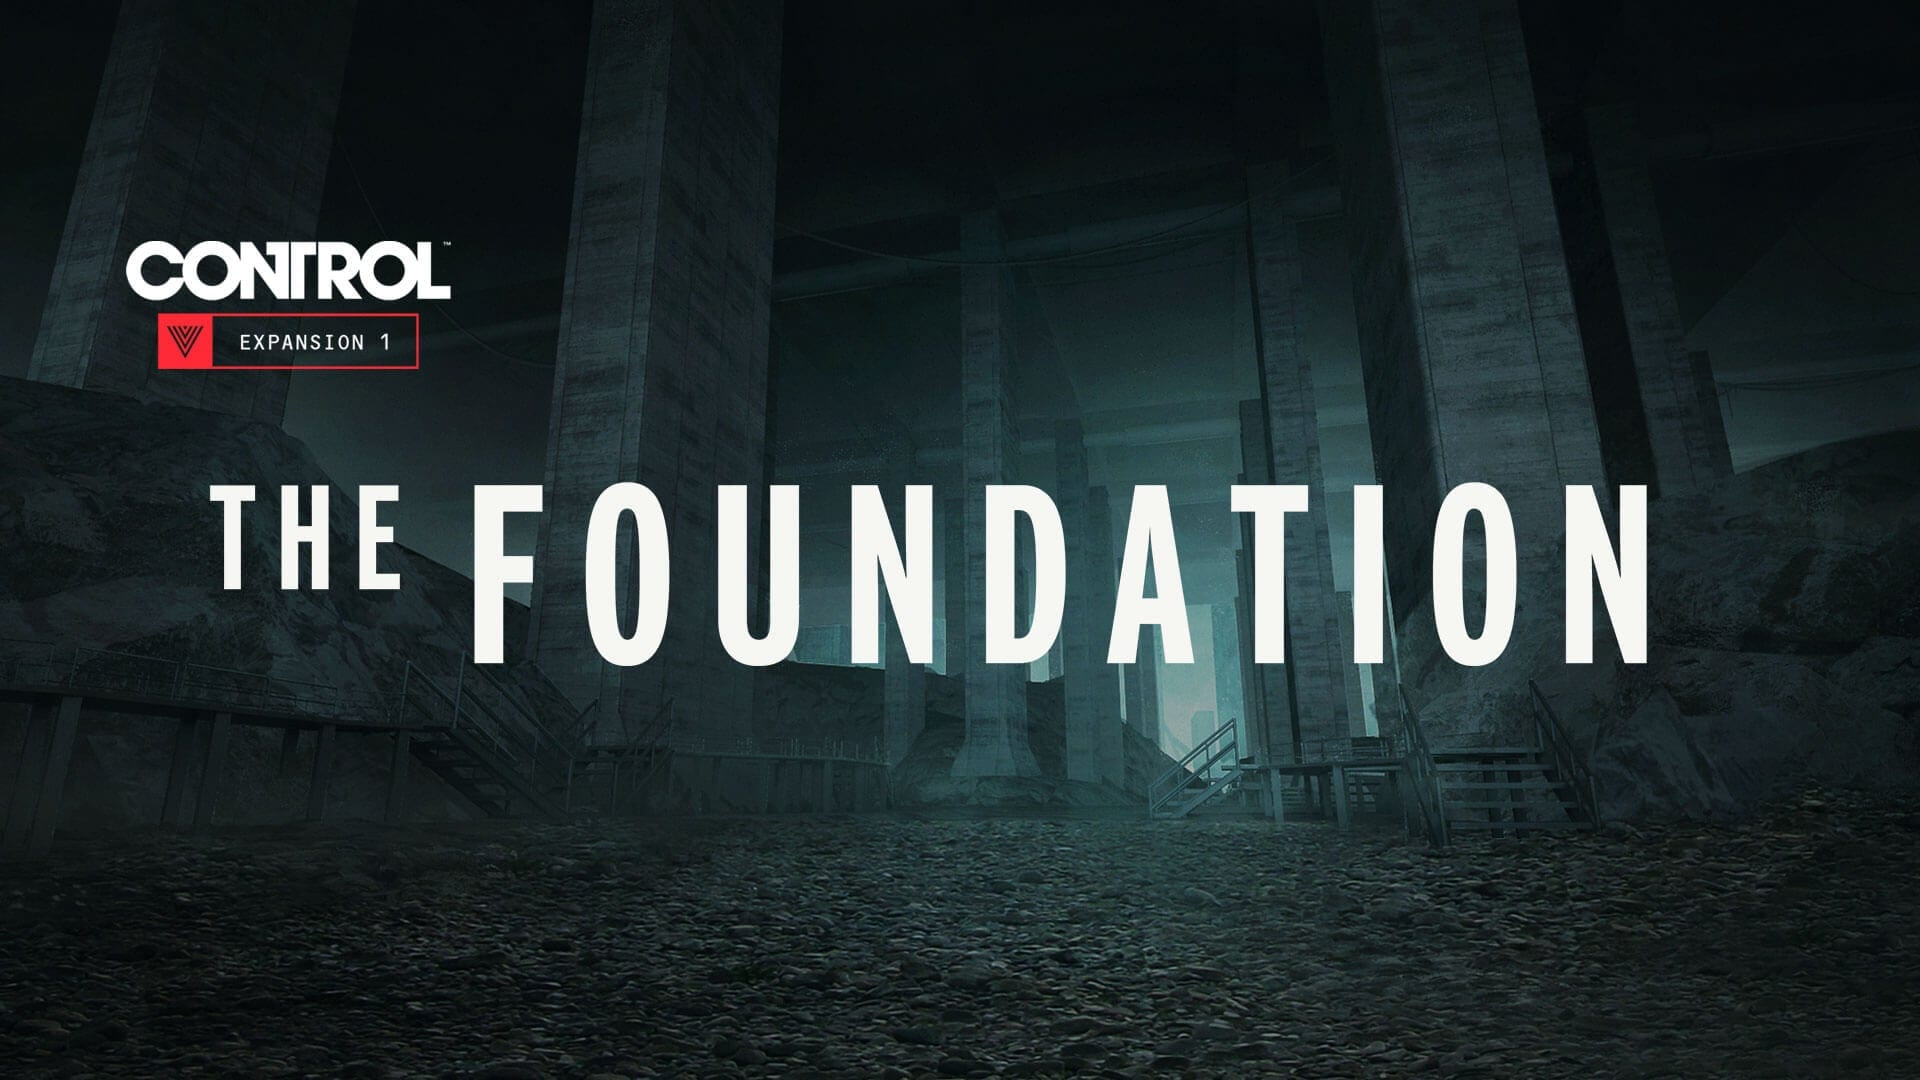 The Foundation Expansion For Critically Acclaimed 'Control' Out Now On Playstation 4 & PC